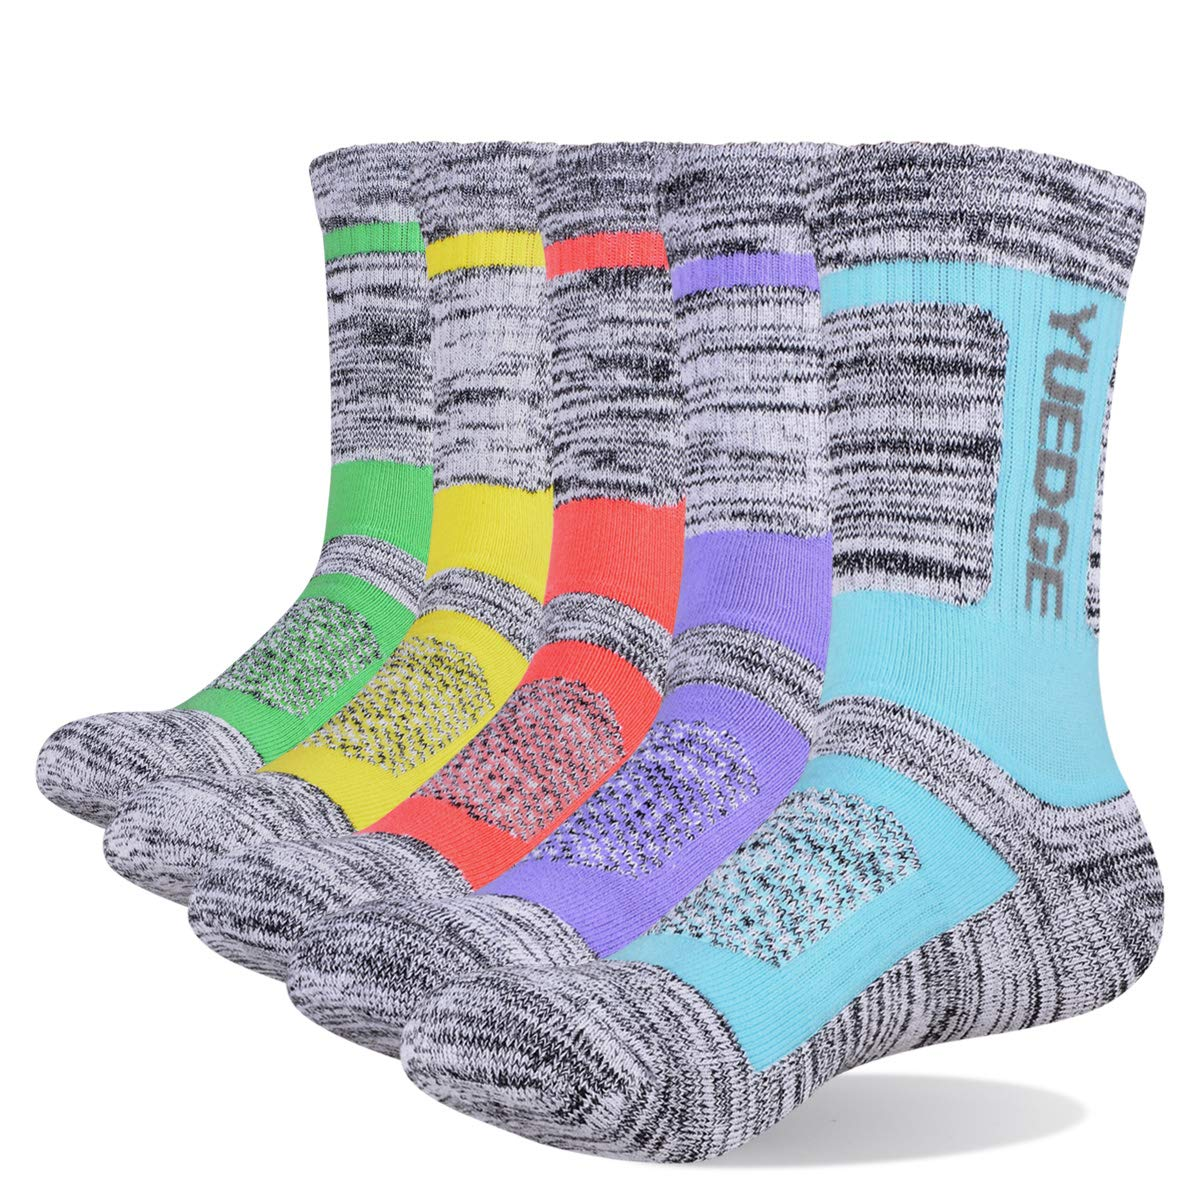 YUEDGE 5 Pairs Women's Cotton Cushion Performance Crew Sports Athletic Hiking Socks by YUEDGE